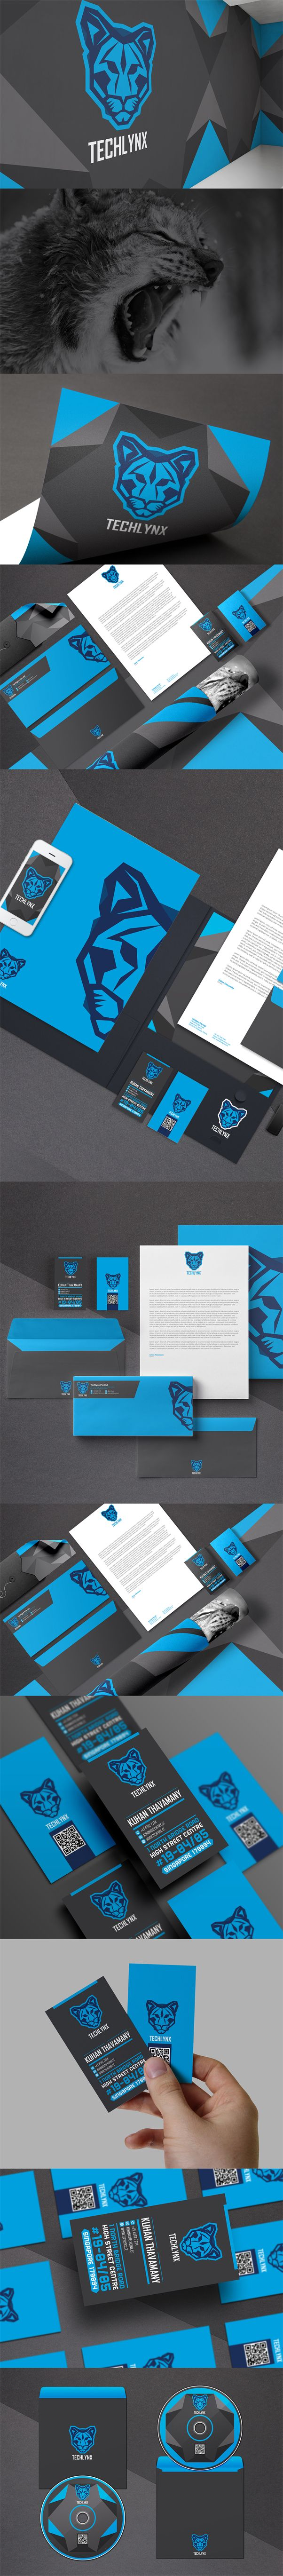 Techlynx branding and identity design. Techlynx is a software company which provide design and development of high-end quality technology products for the industry. Logo design consists of a techy visual of a bobcat (Lynx).  #identity #branding #style #logo #logotype #blue #graphicdesign #creative #businesscard #lynx